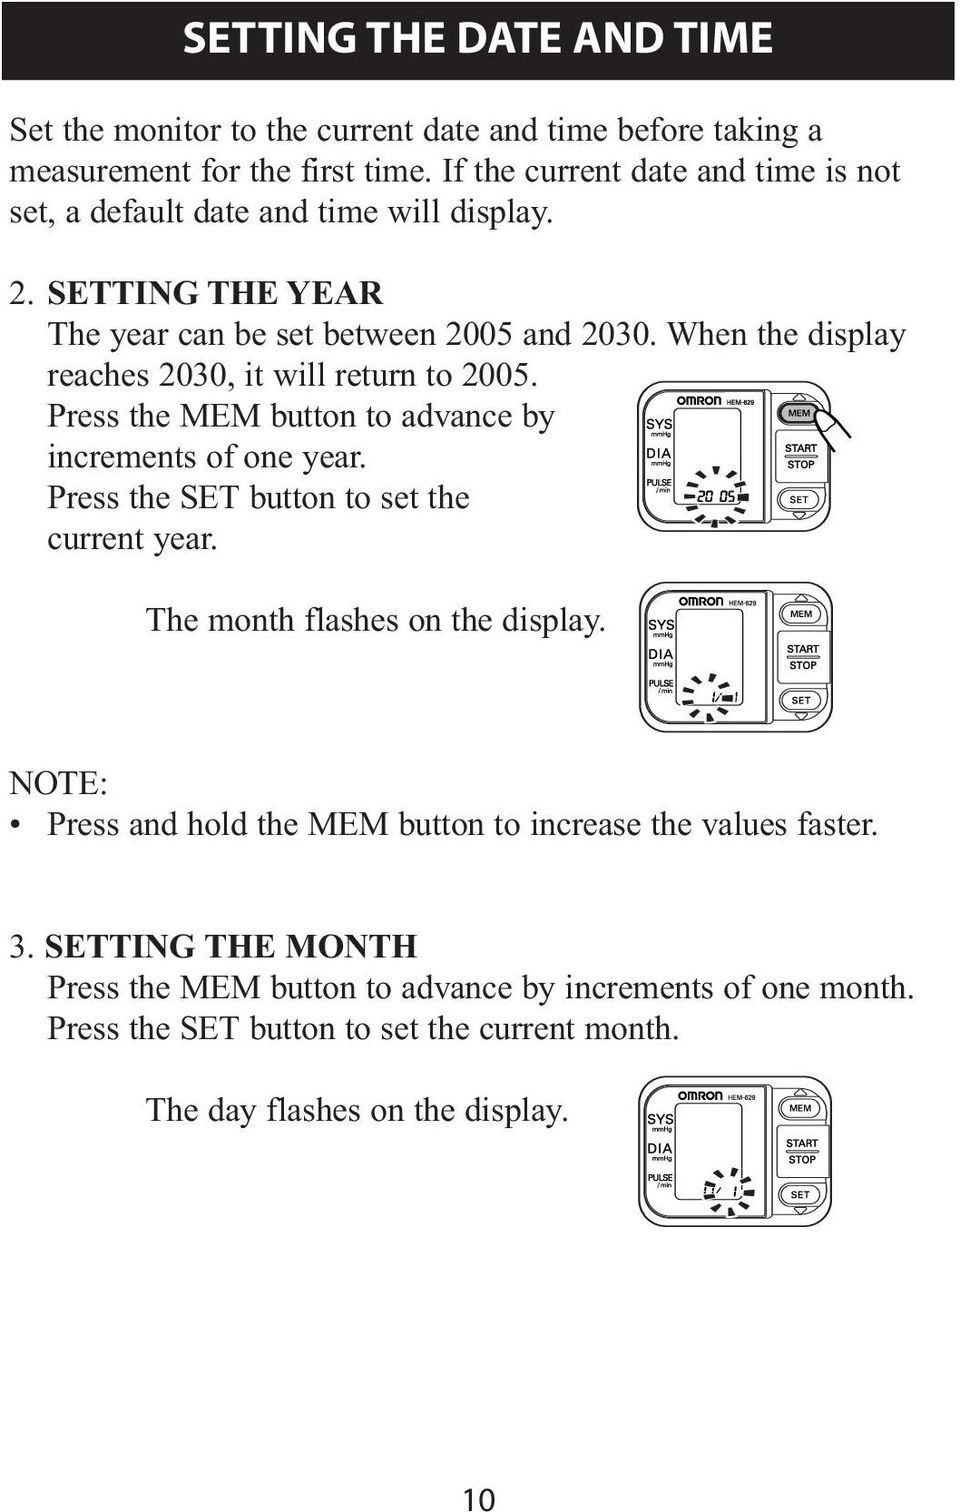 When the display reaches 2030, it will return to 2005. Press the MEM button to advance by increments of one year. Press the SET button to set the current year.